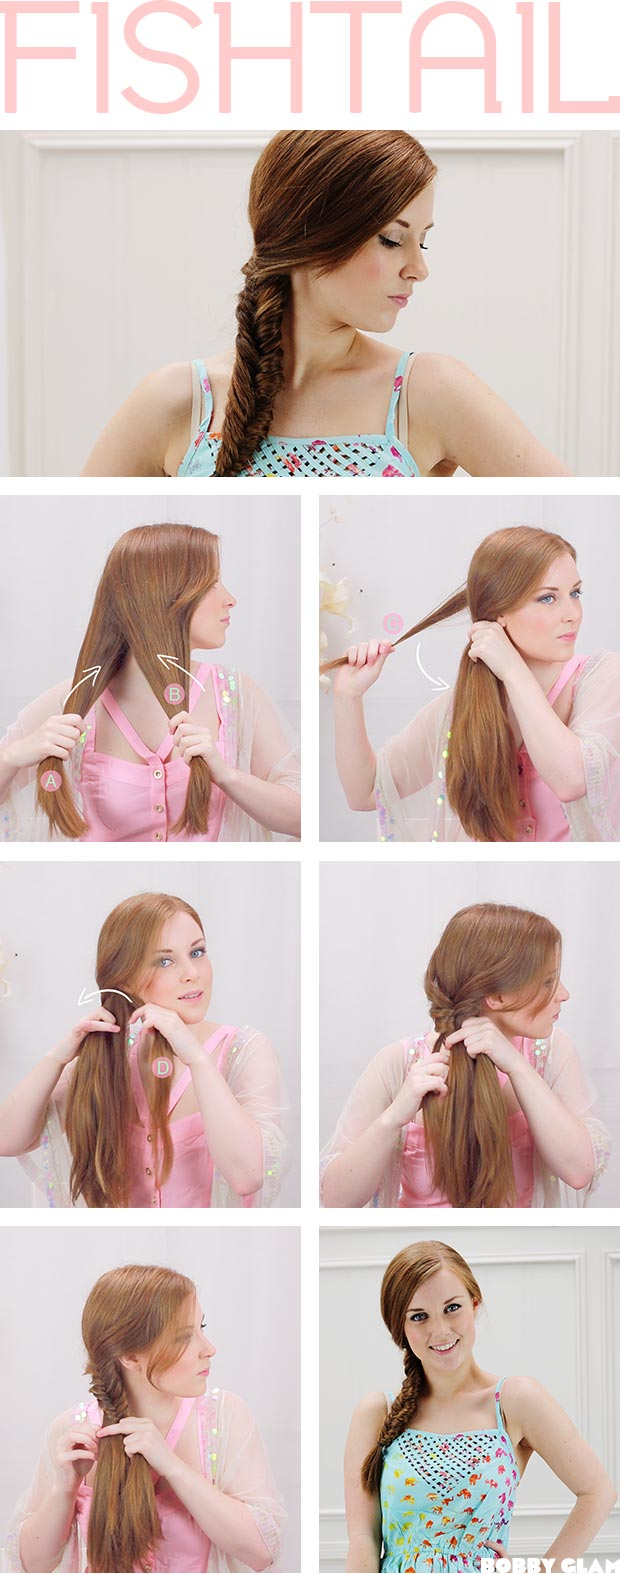 fishtail braid tutorial - photo #2